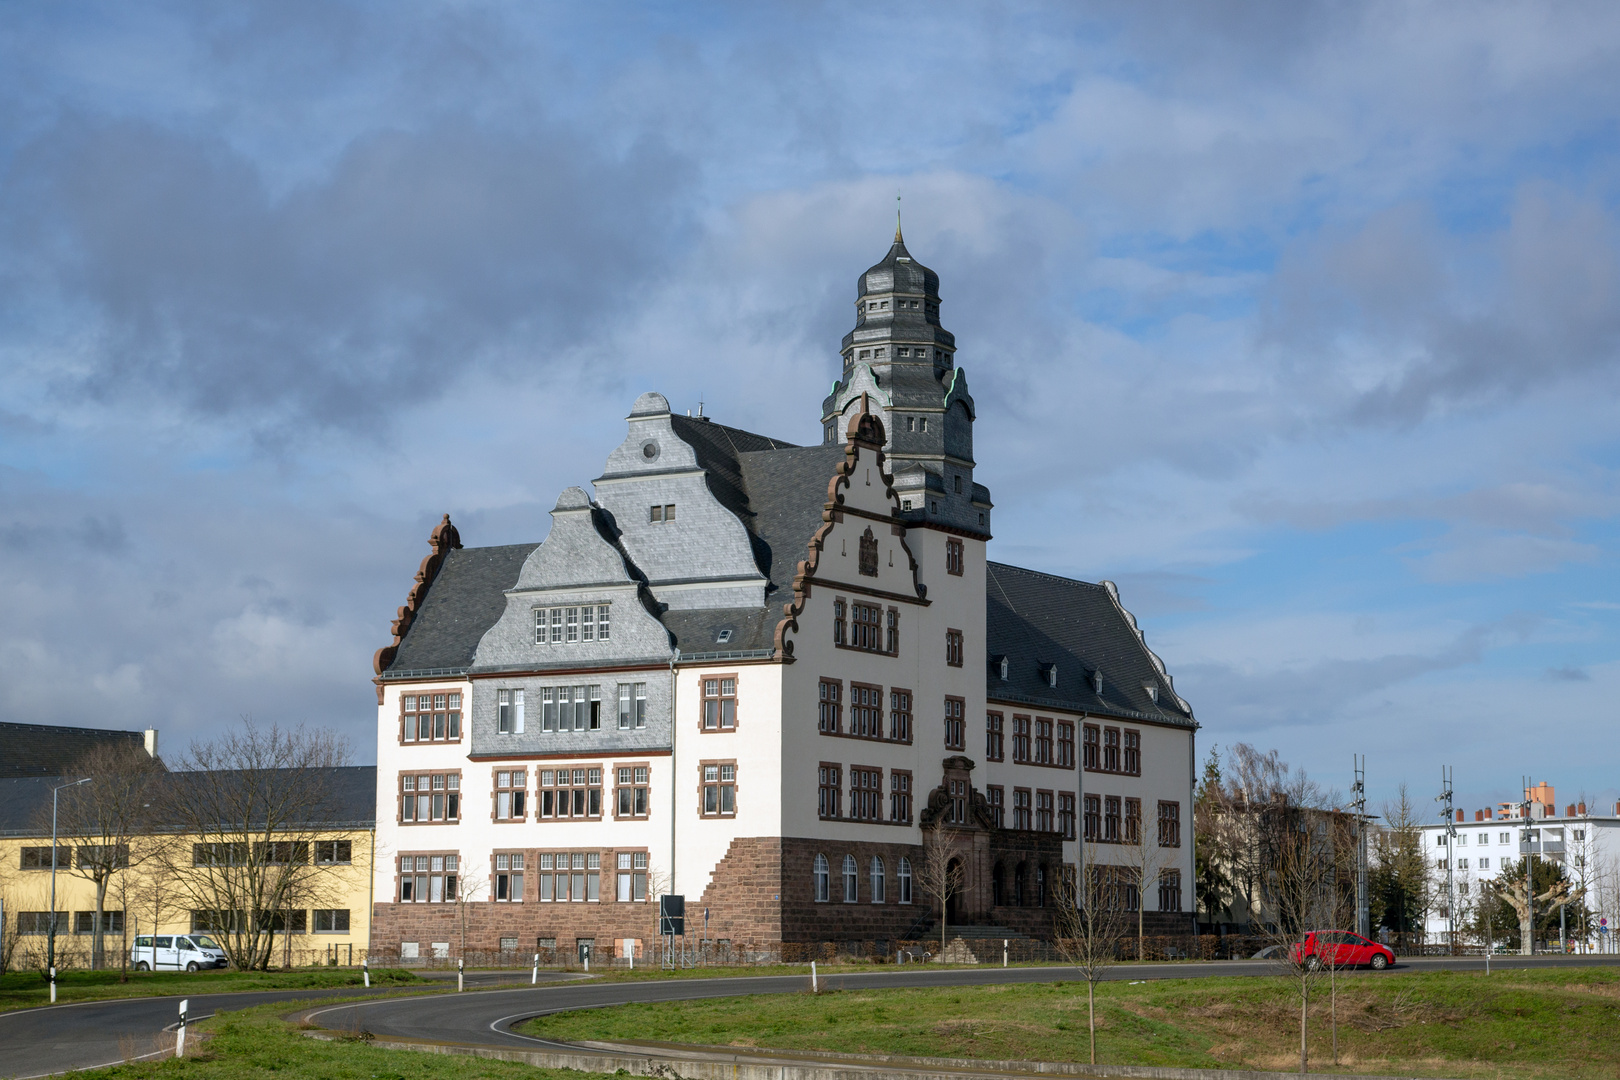 Ernst-Ludwig-Schule in Worms